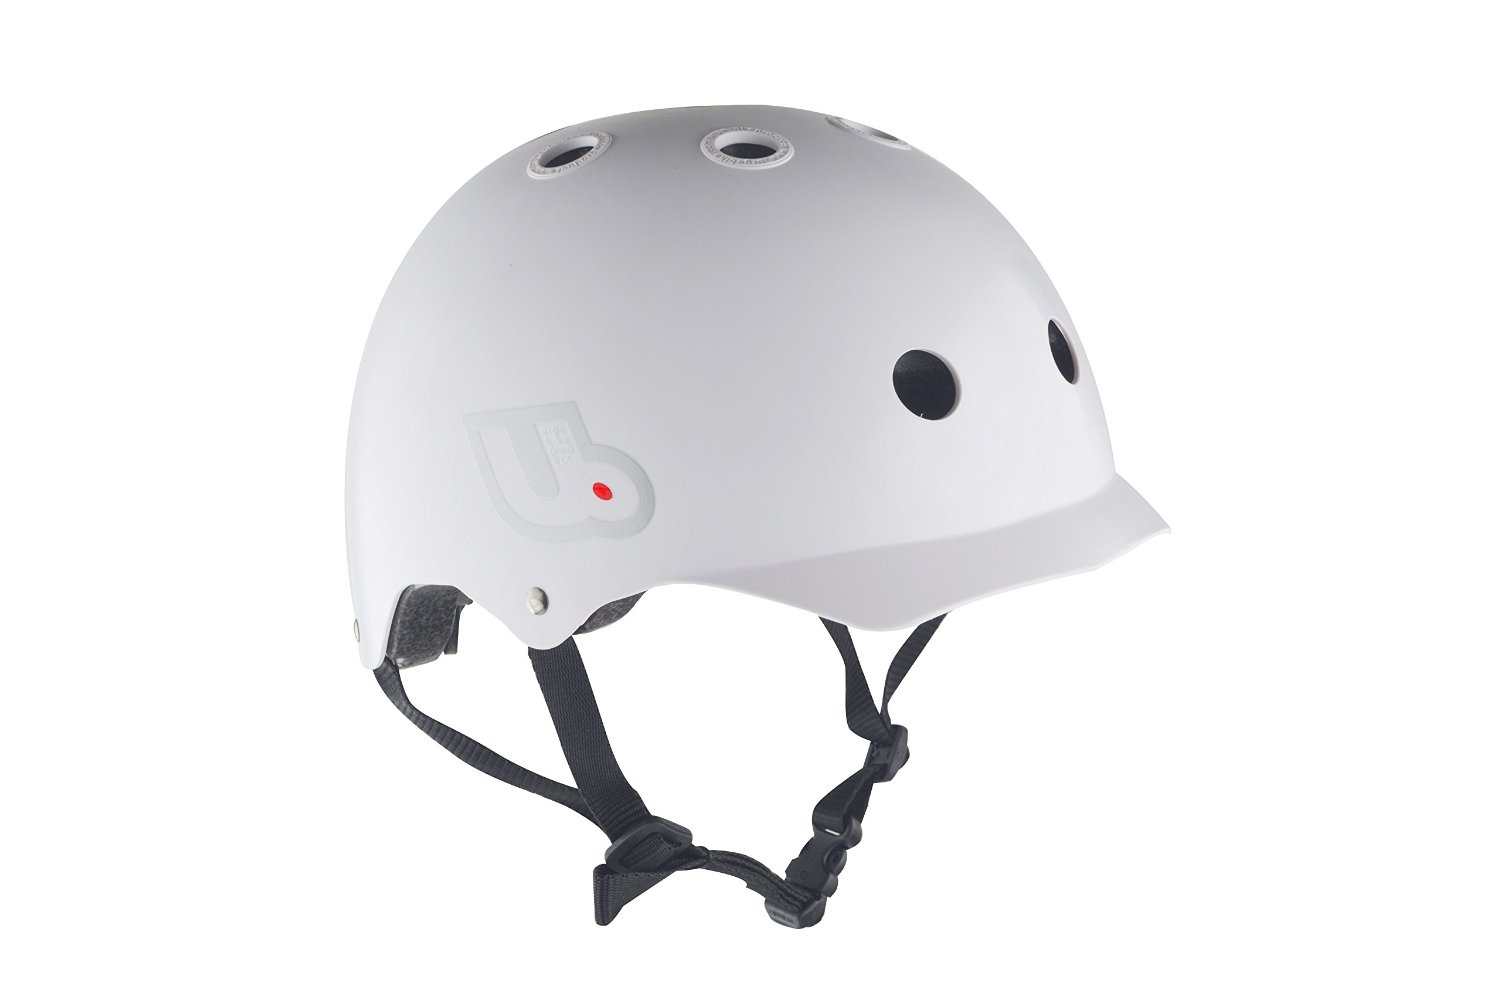 White Urge Bike Products Bicycle Helmets